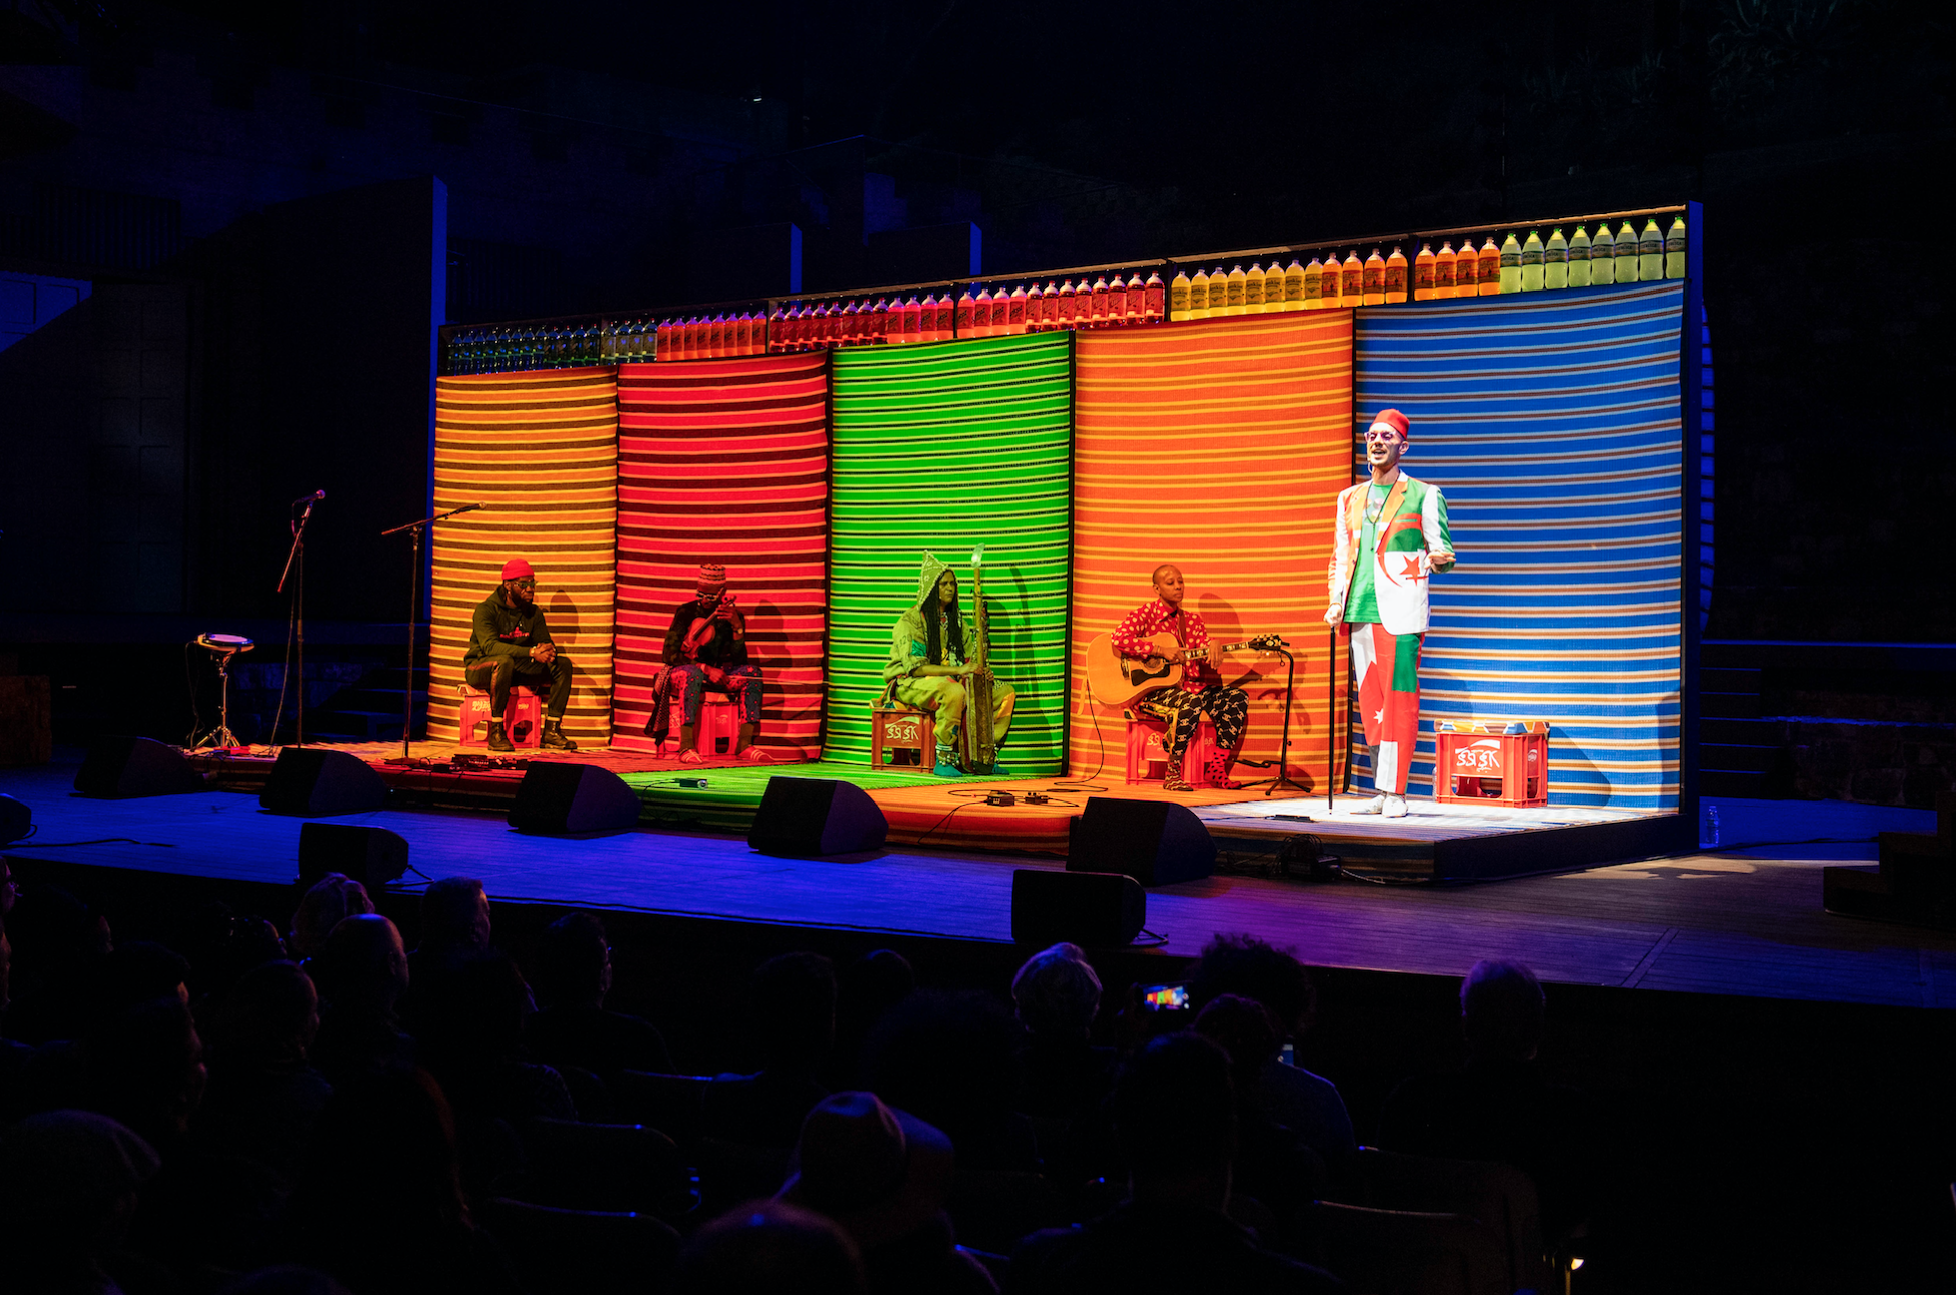 Omar Offendum in the spotlight. Hassan Hajjaj's MY ROCKSTARS EXPERIMENTAL LIVE at the Ford Theatres. Photograph by Timothy Norris